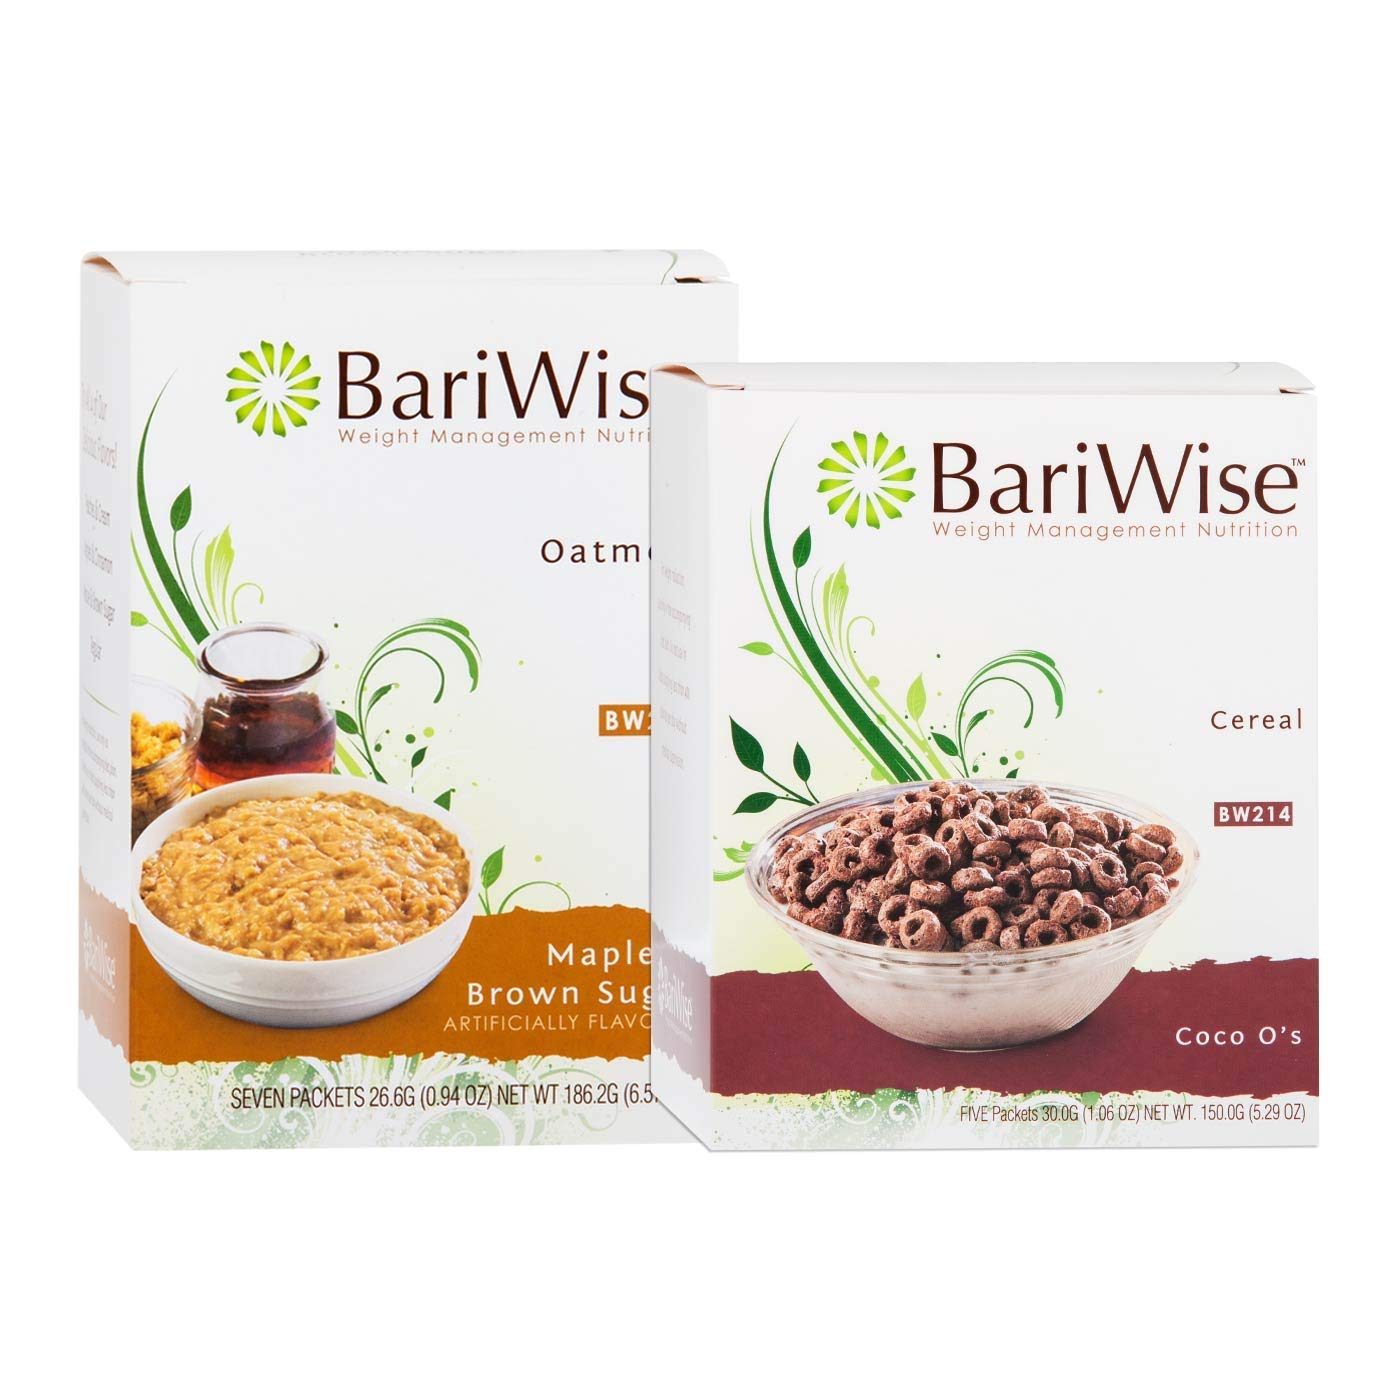 BariWise Maple & Brown Sugar Protein Oatmeal and Coco Os Protein Cereal Bundle